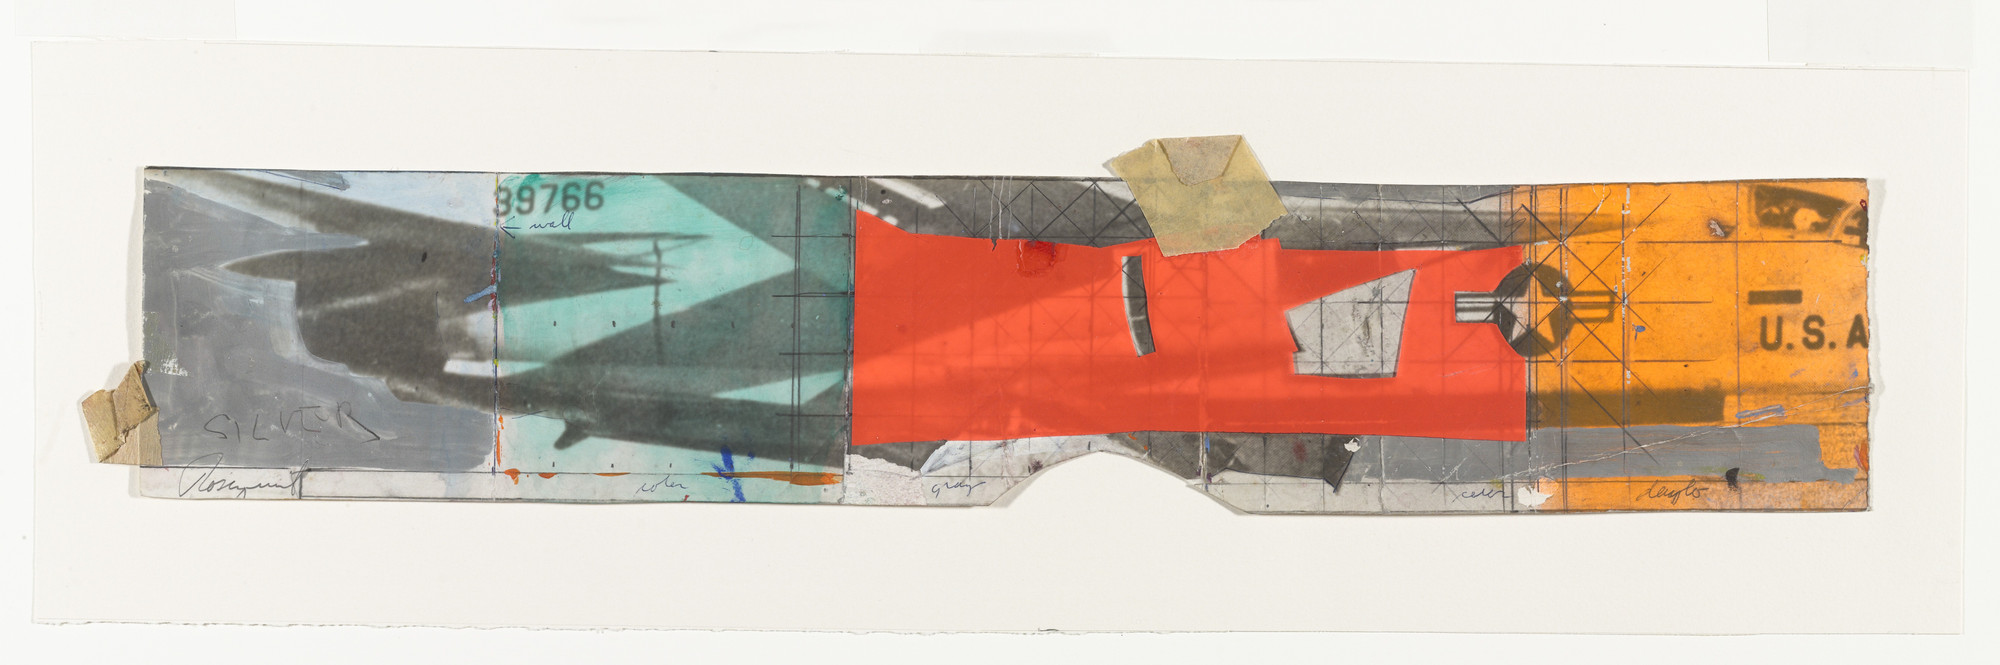 James Rosenquist. Collage for F-111. (1964-65)